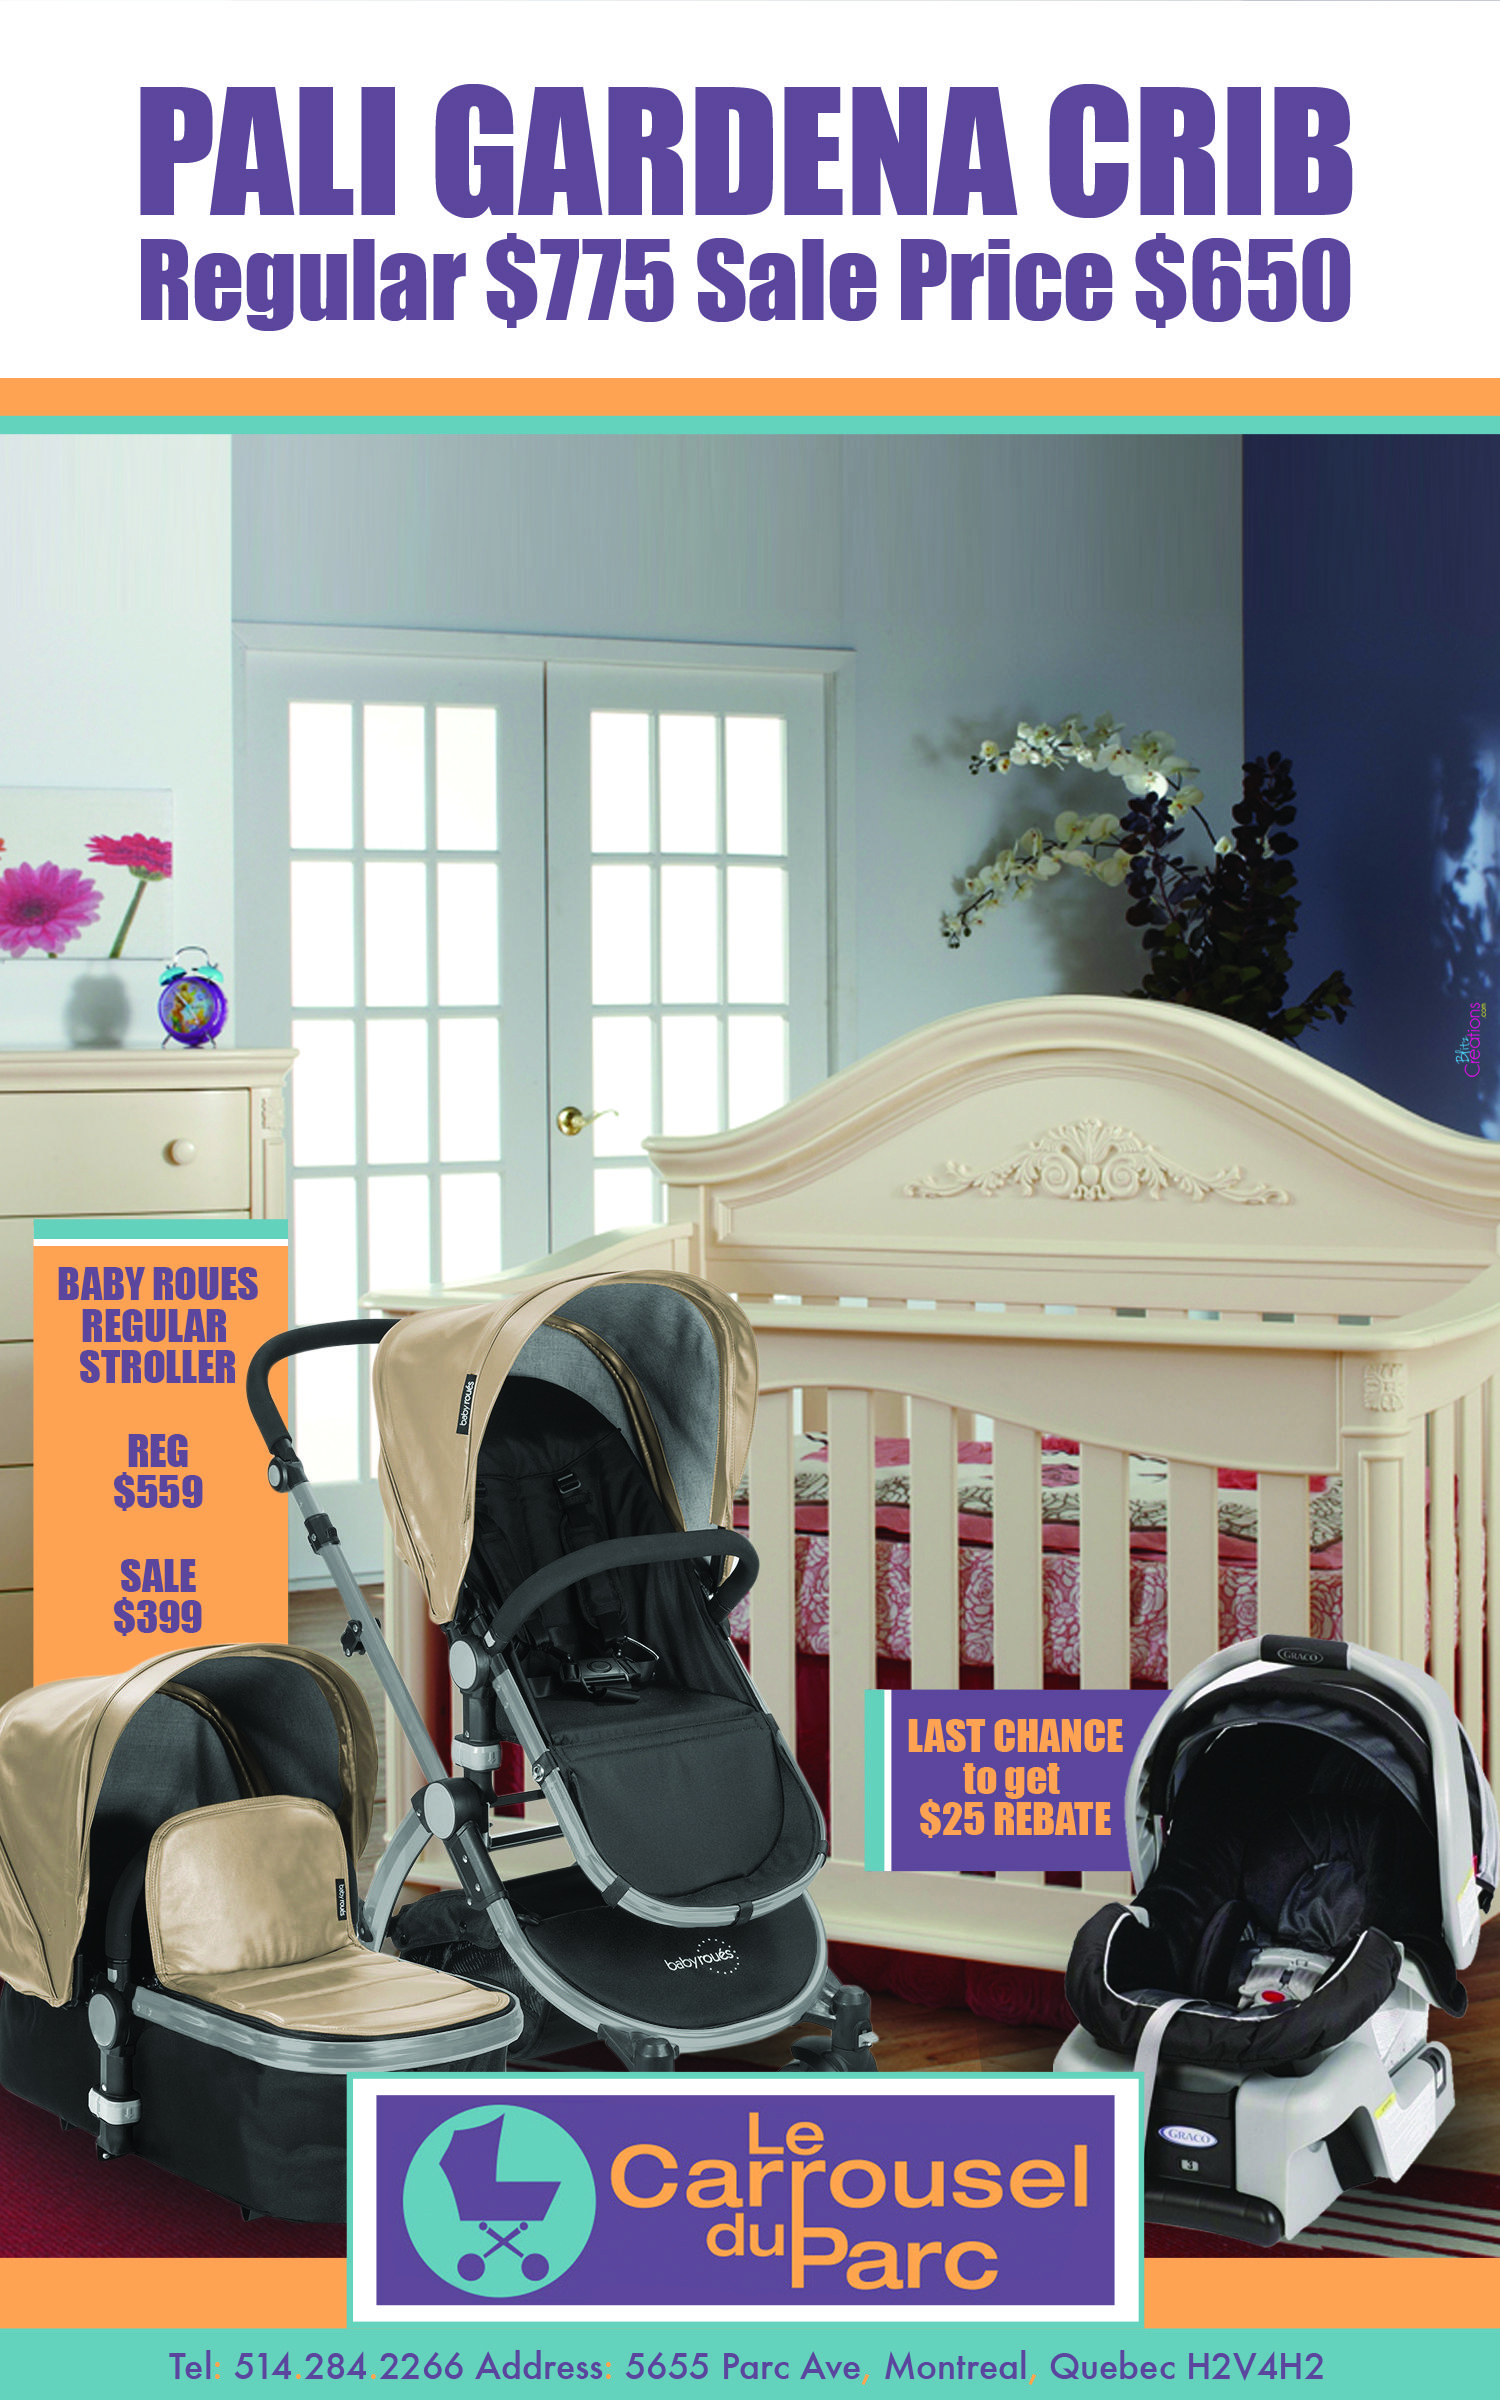 Pali crib for sale used - Come To Carrousel Du Parc For A Fantastic Sale On Baby Roues Strollers Pali Gardena